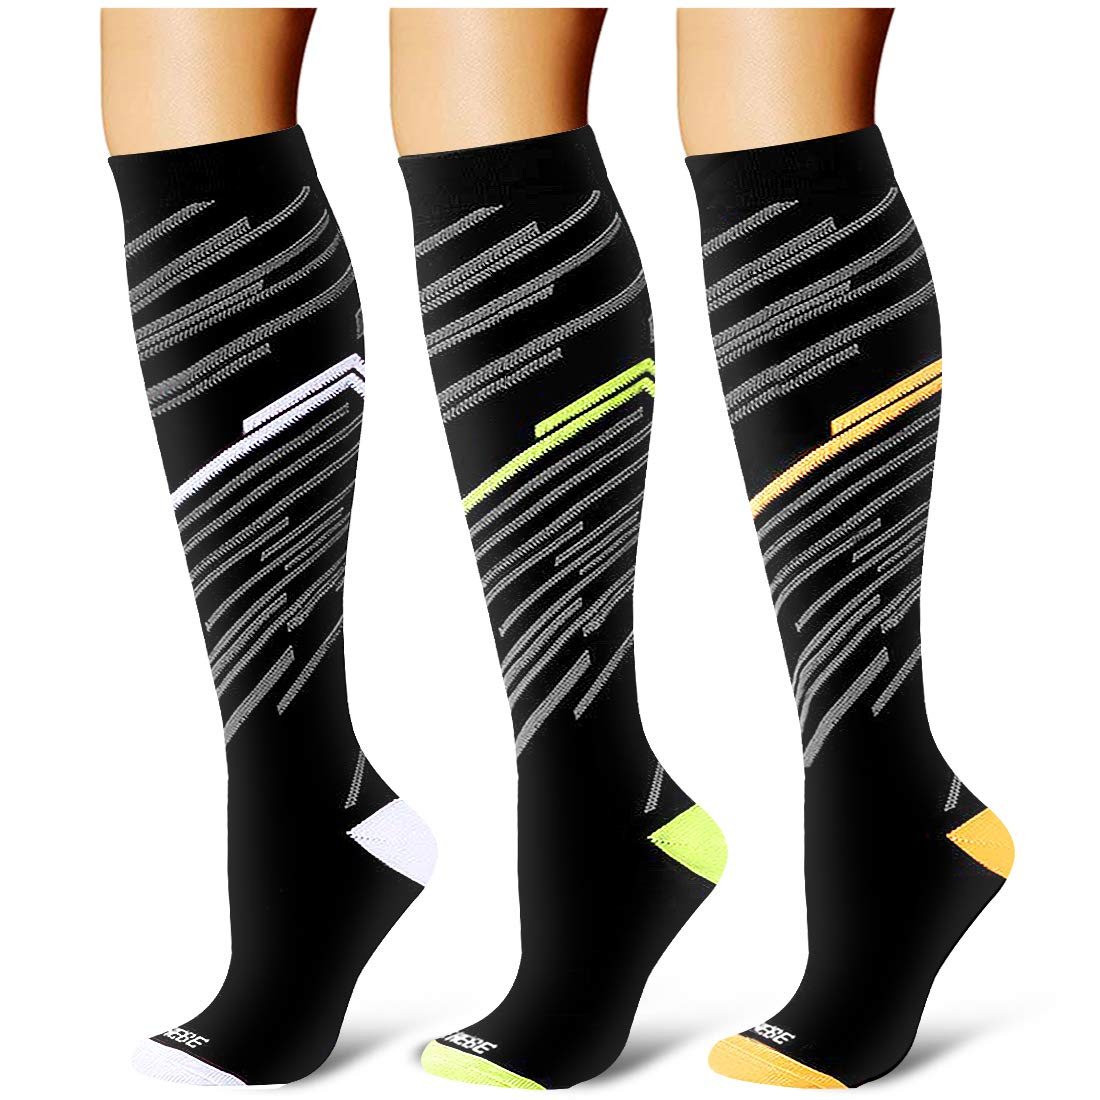 Laite Hebe Compression Socks,(3 Pairs) Compression Sock Women & Men - Best Running, Athletic Sports, Crossfit, Flight Travel£¨Multti-colors13-S/M£ by Laite Hebe